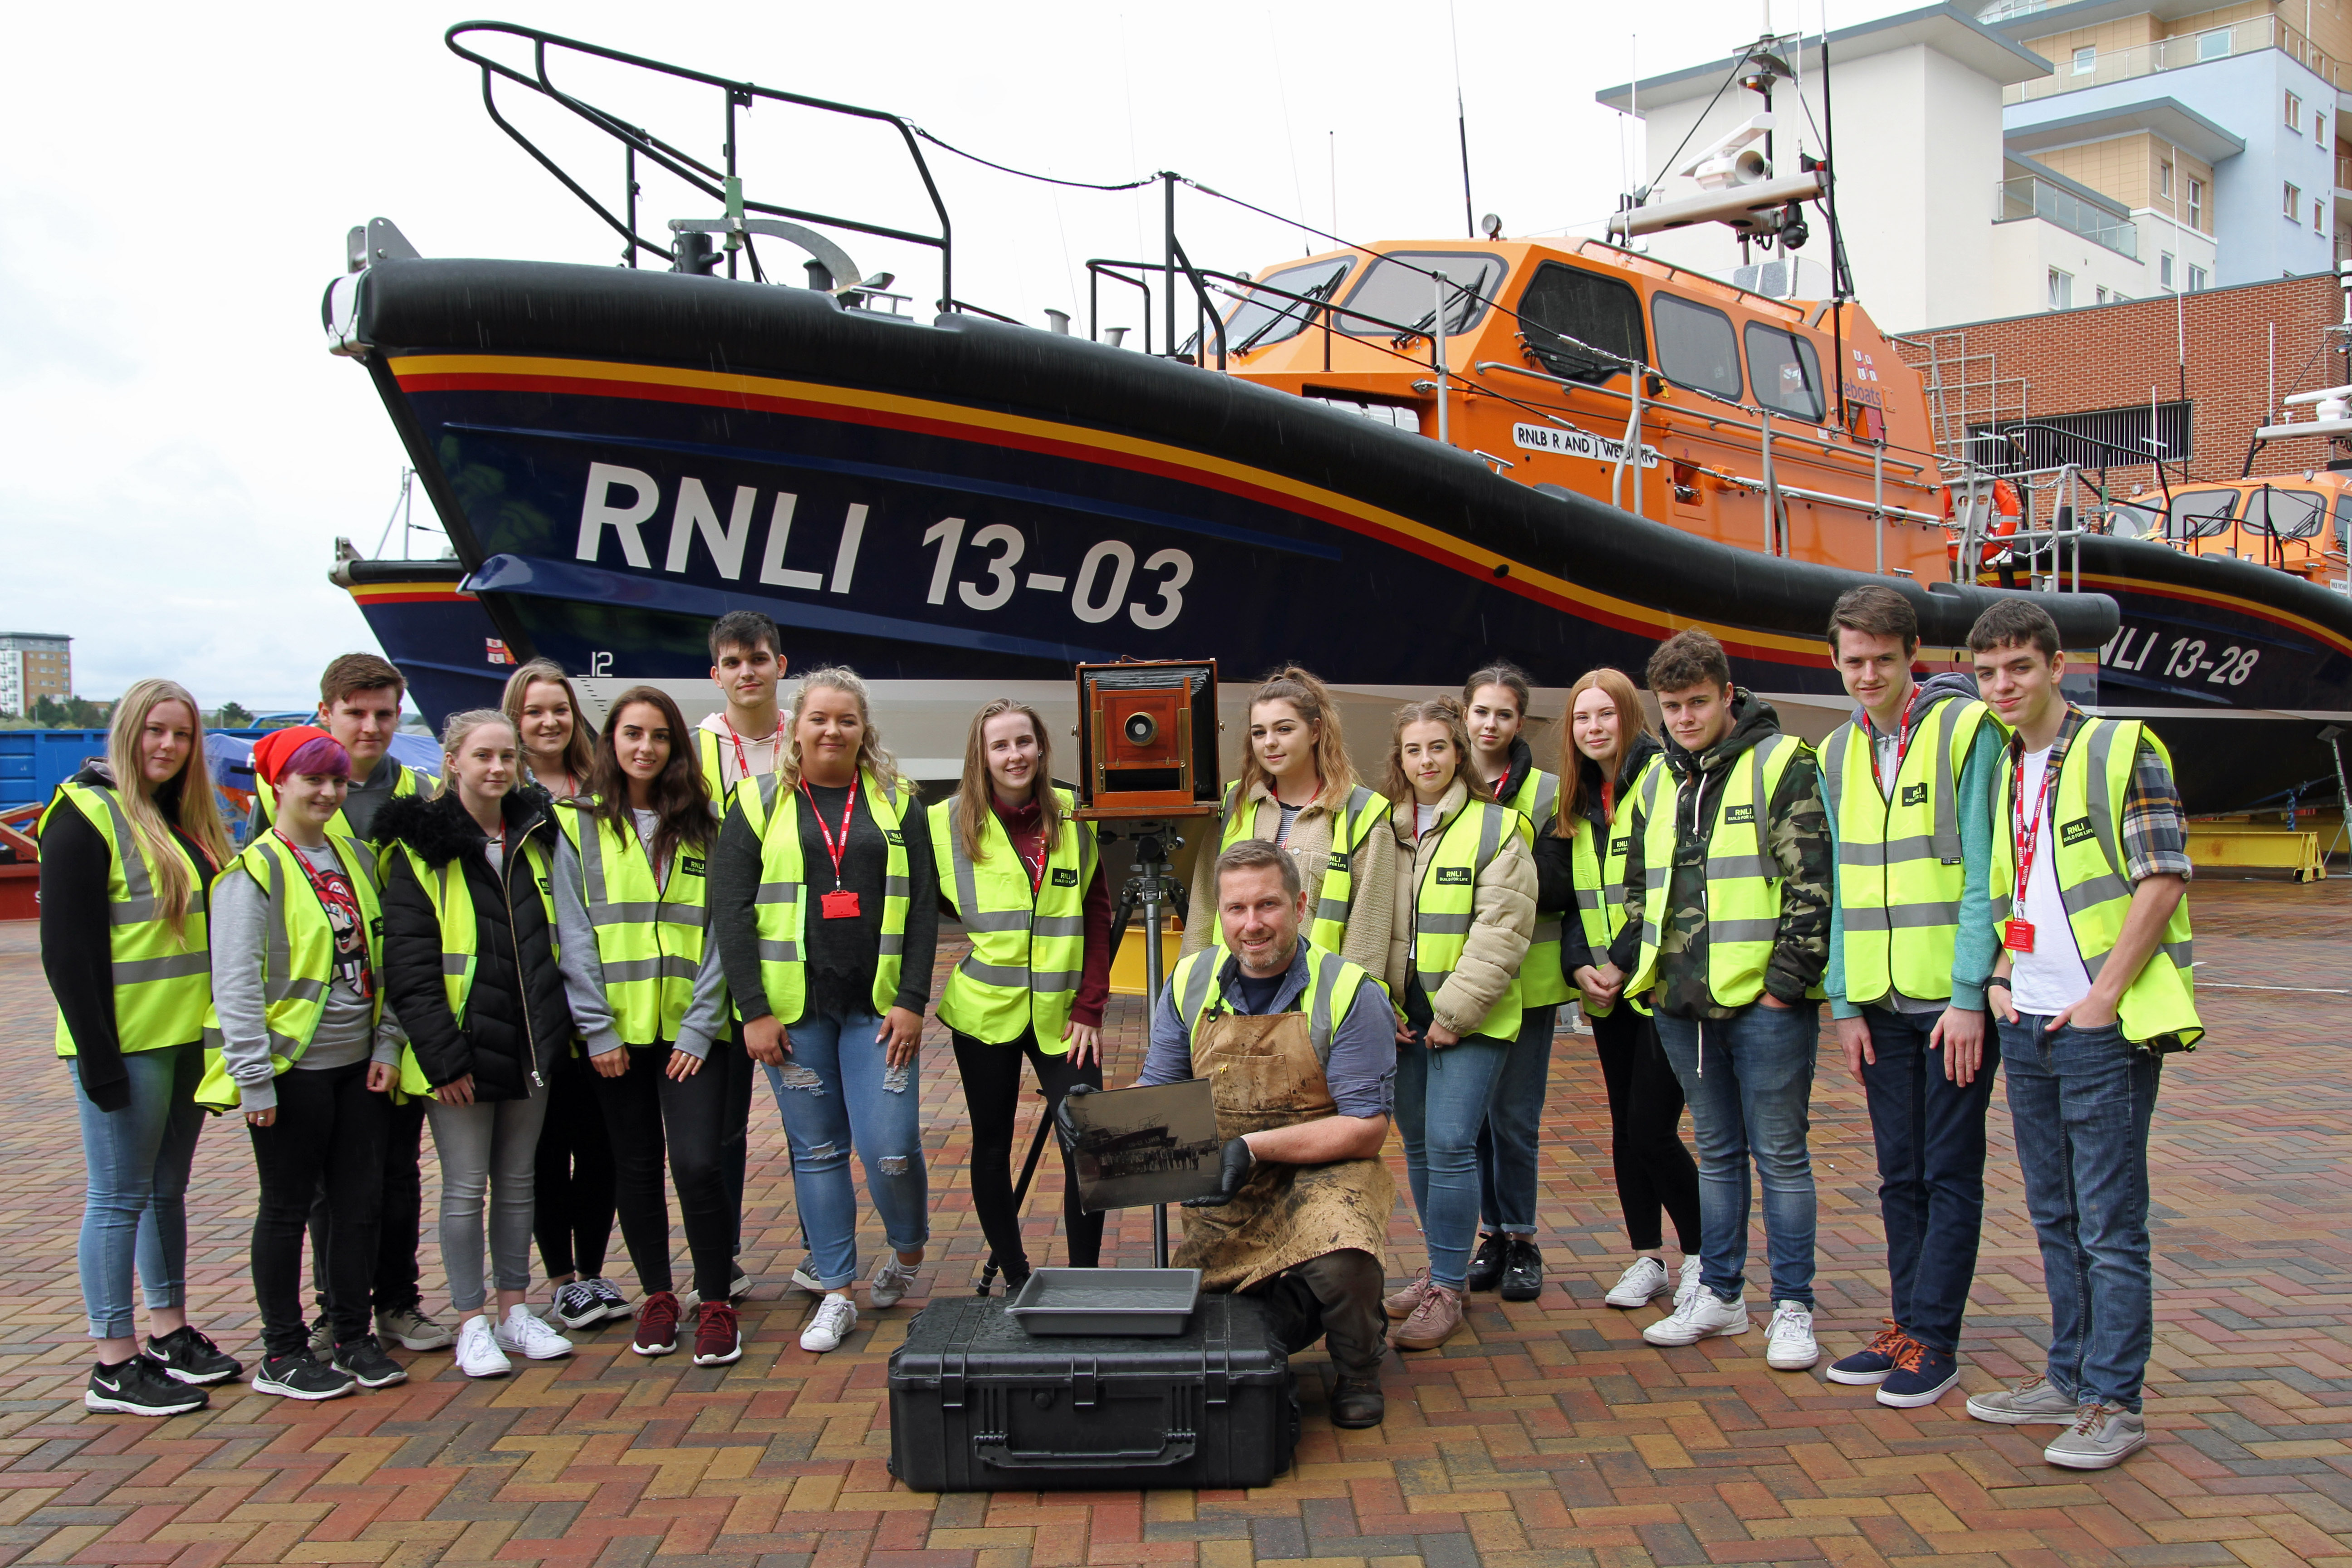 Jack Lowe and photography students from Poole High School at RNLI. Jack holding glass plate.